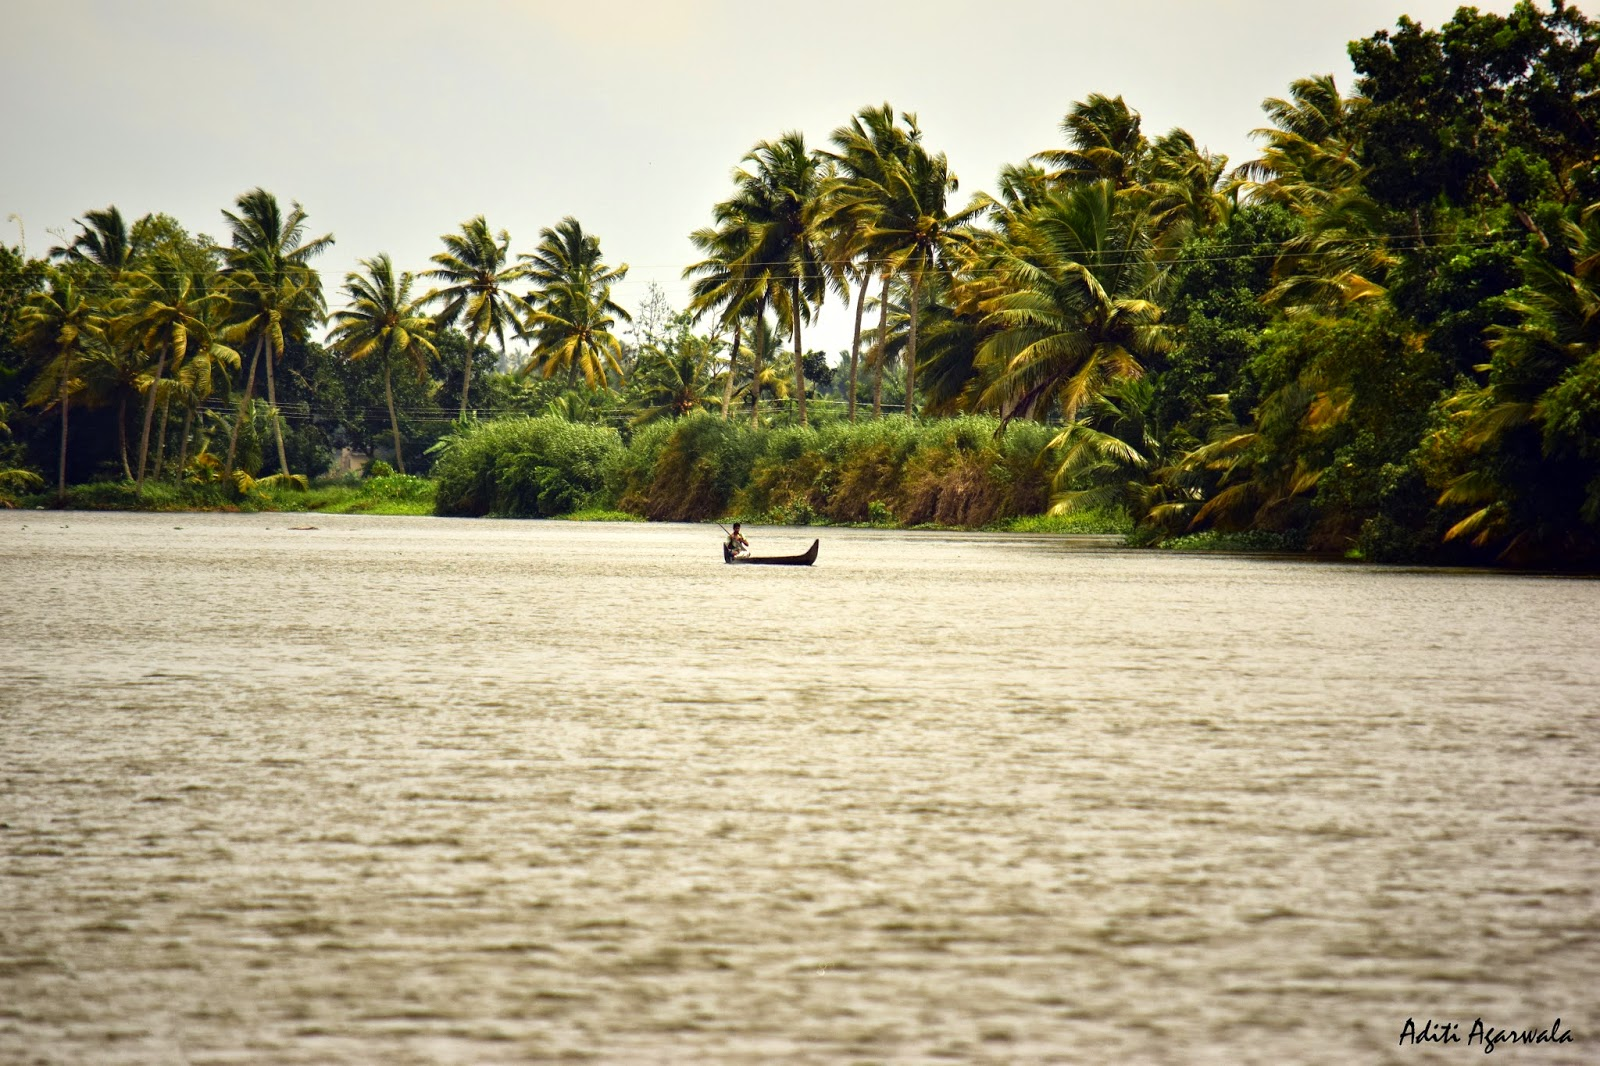 Fisherman on the backwaters of Allepey, Kerala